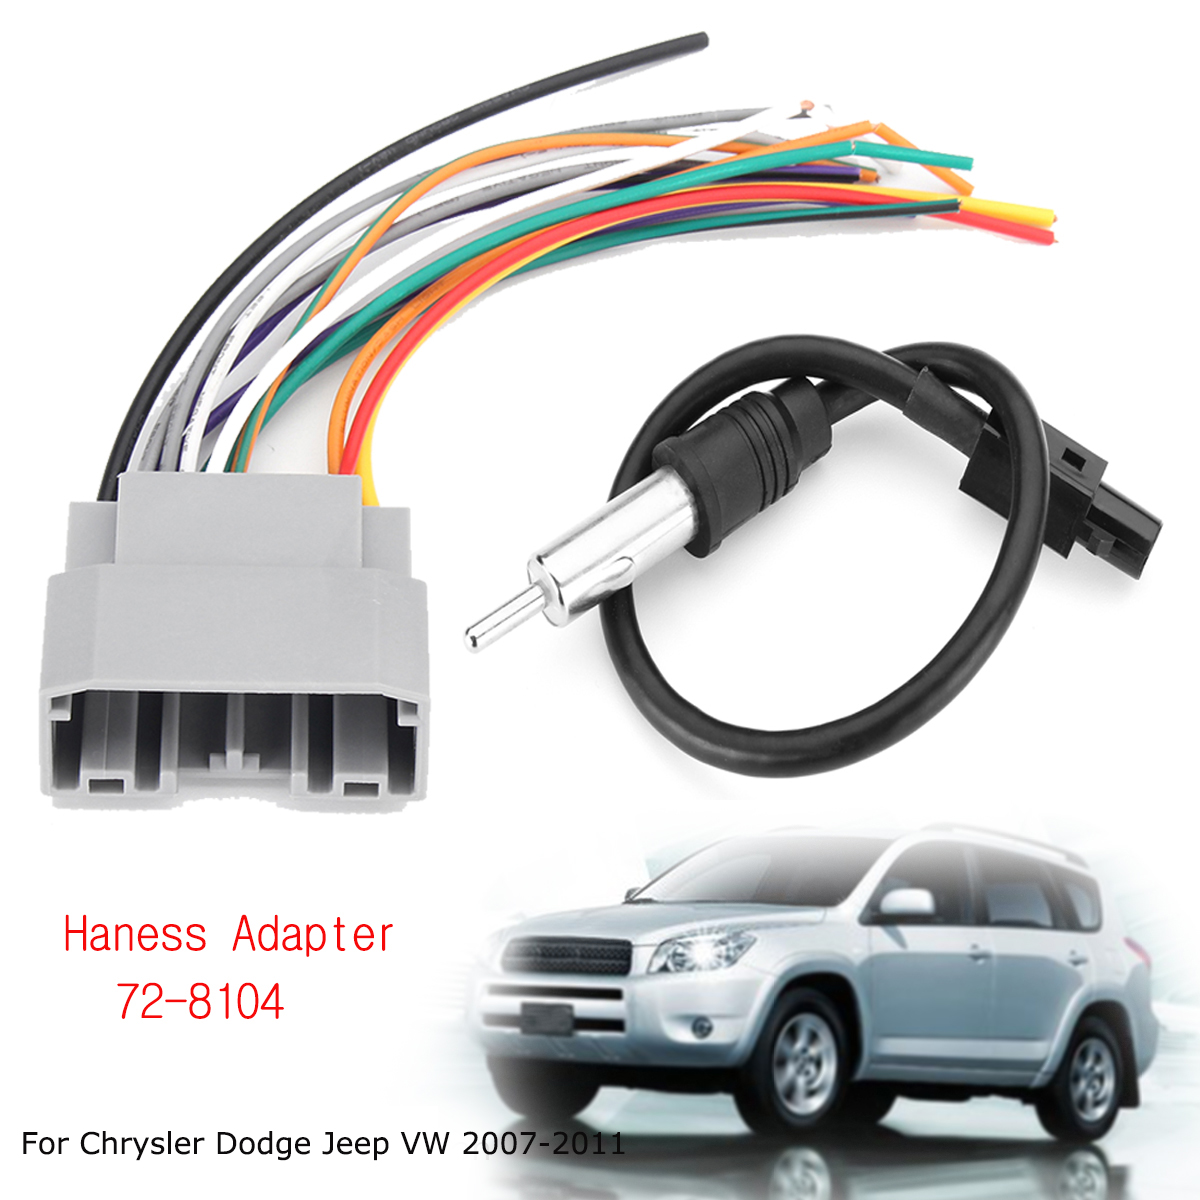 Car Stereo Wiring Harness Adapter Antenna For Chrysler Dodge Jeep Adapters Shipping Methods